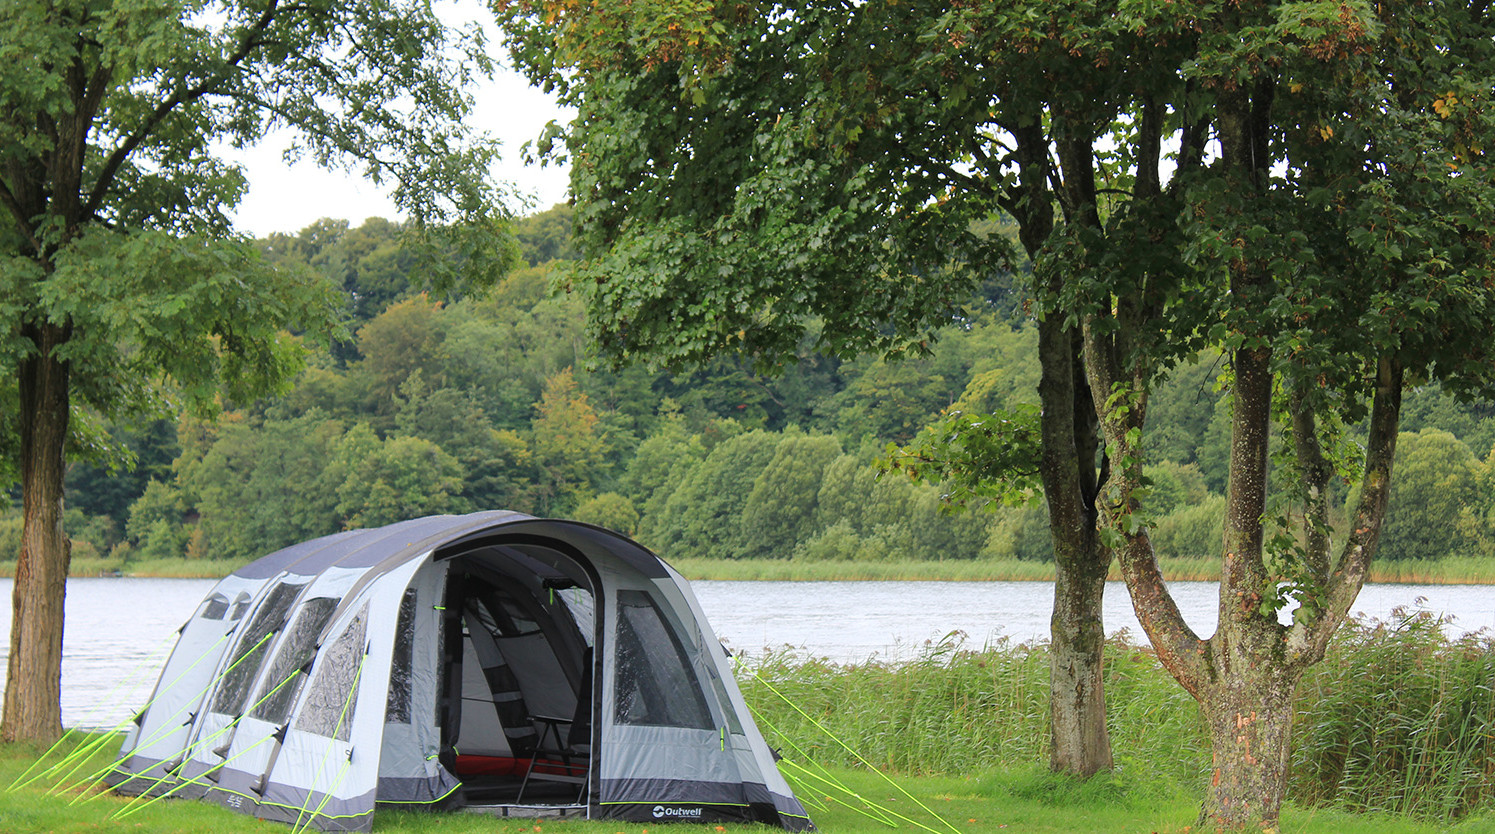 What to Look for When Buying a New Tent